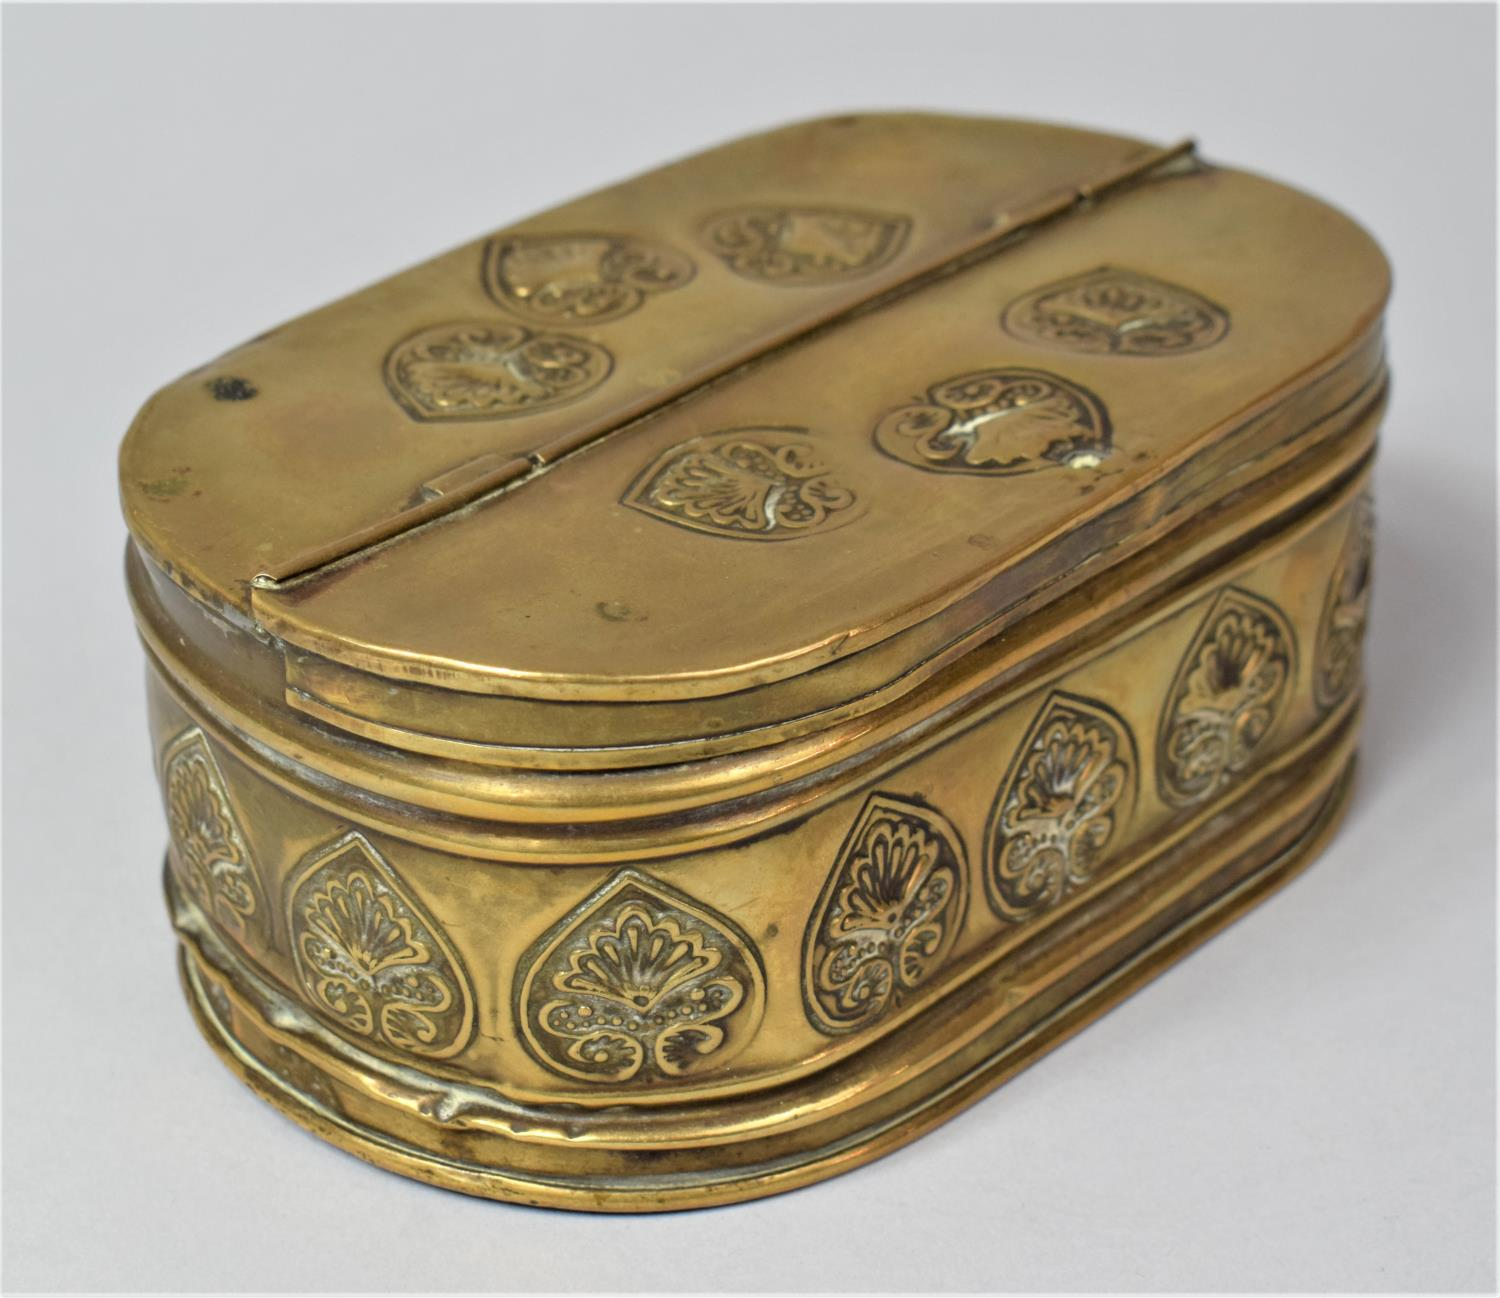 A 19th Century Dutch Brass Oval Two Division Tobacco Box with Hinged Lid, 15.5cm Long - Image 2 of 5